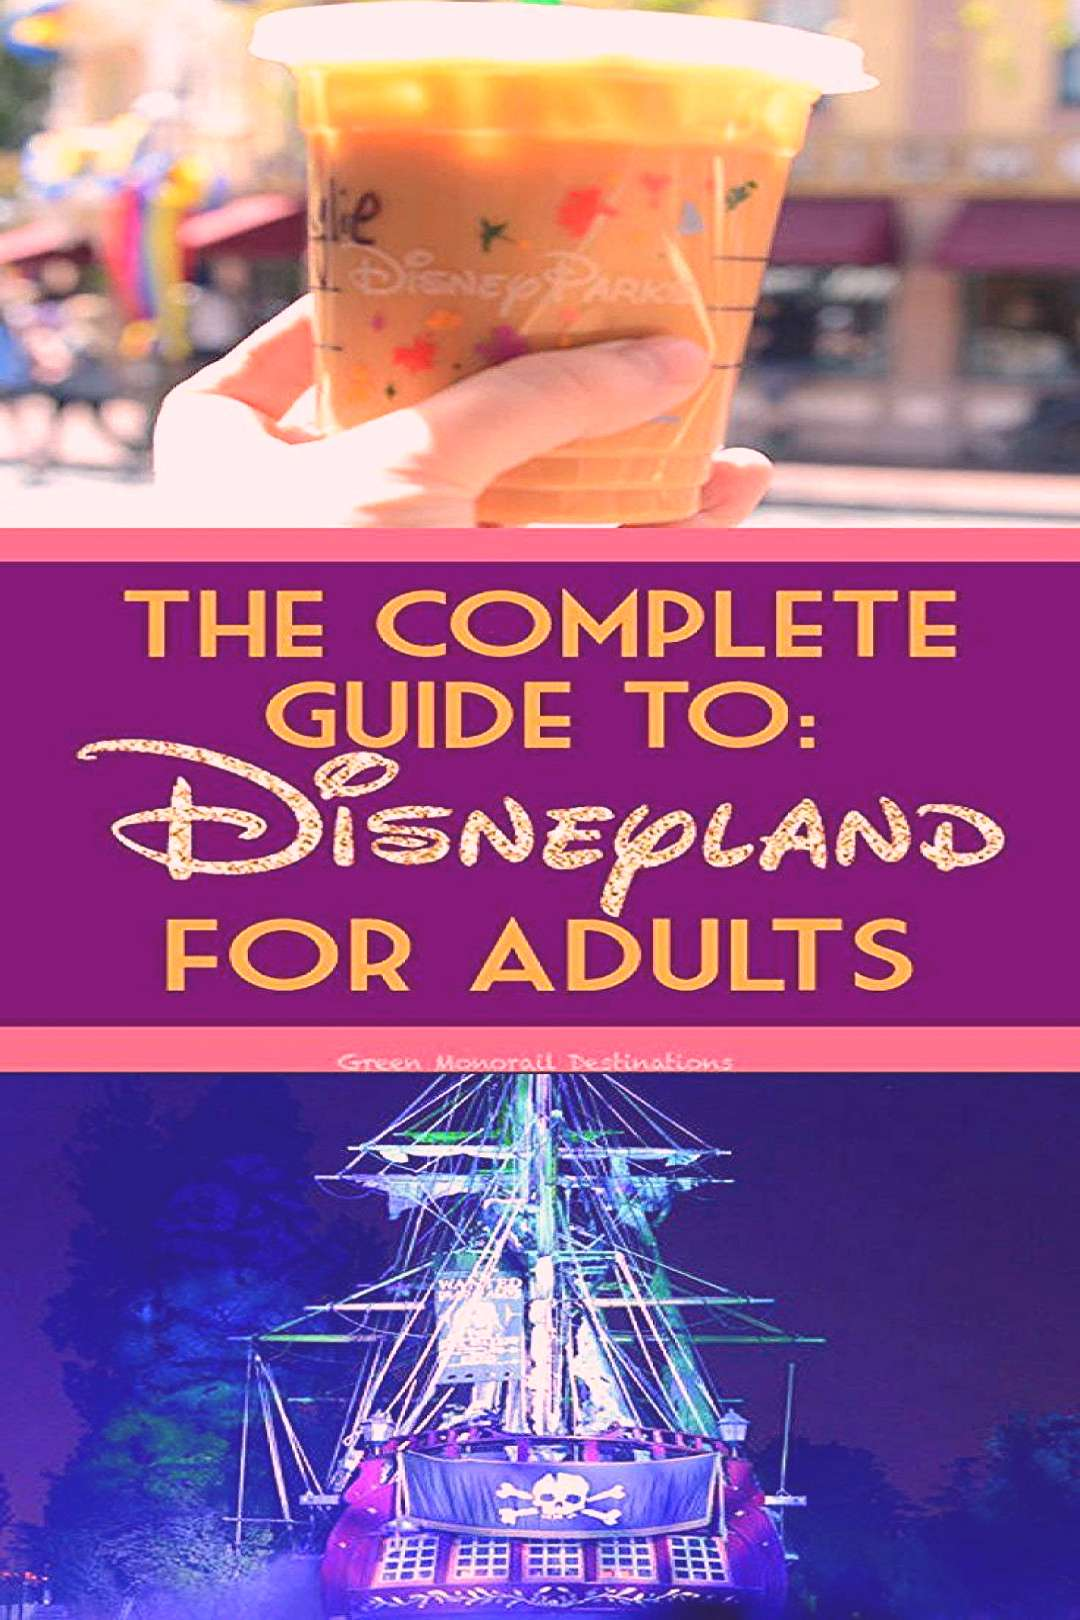 Disneyland is no longer just for kids! Heres a complete planning guide for visiting Disneyland as